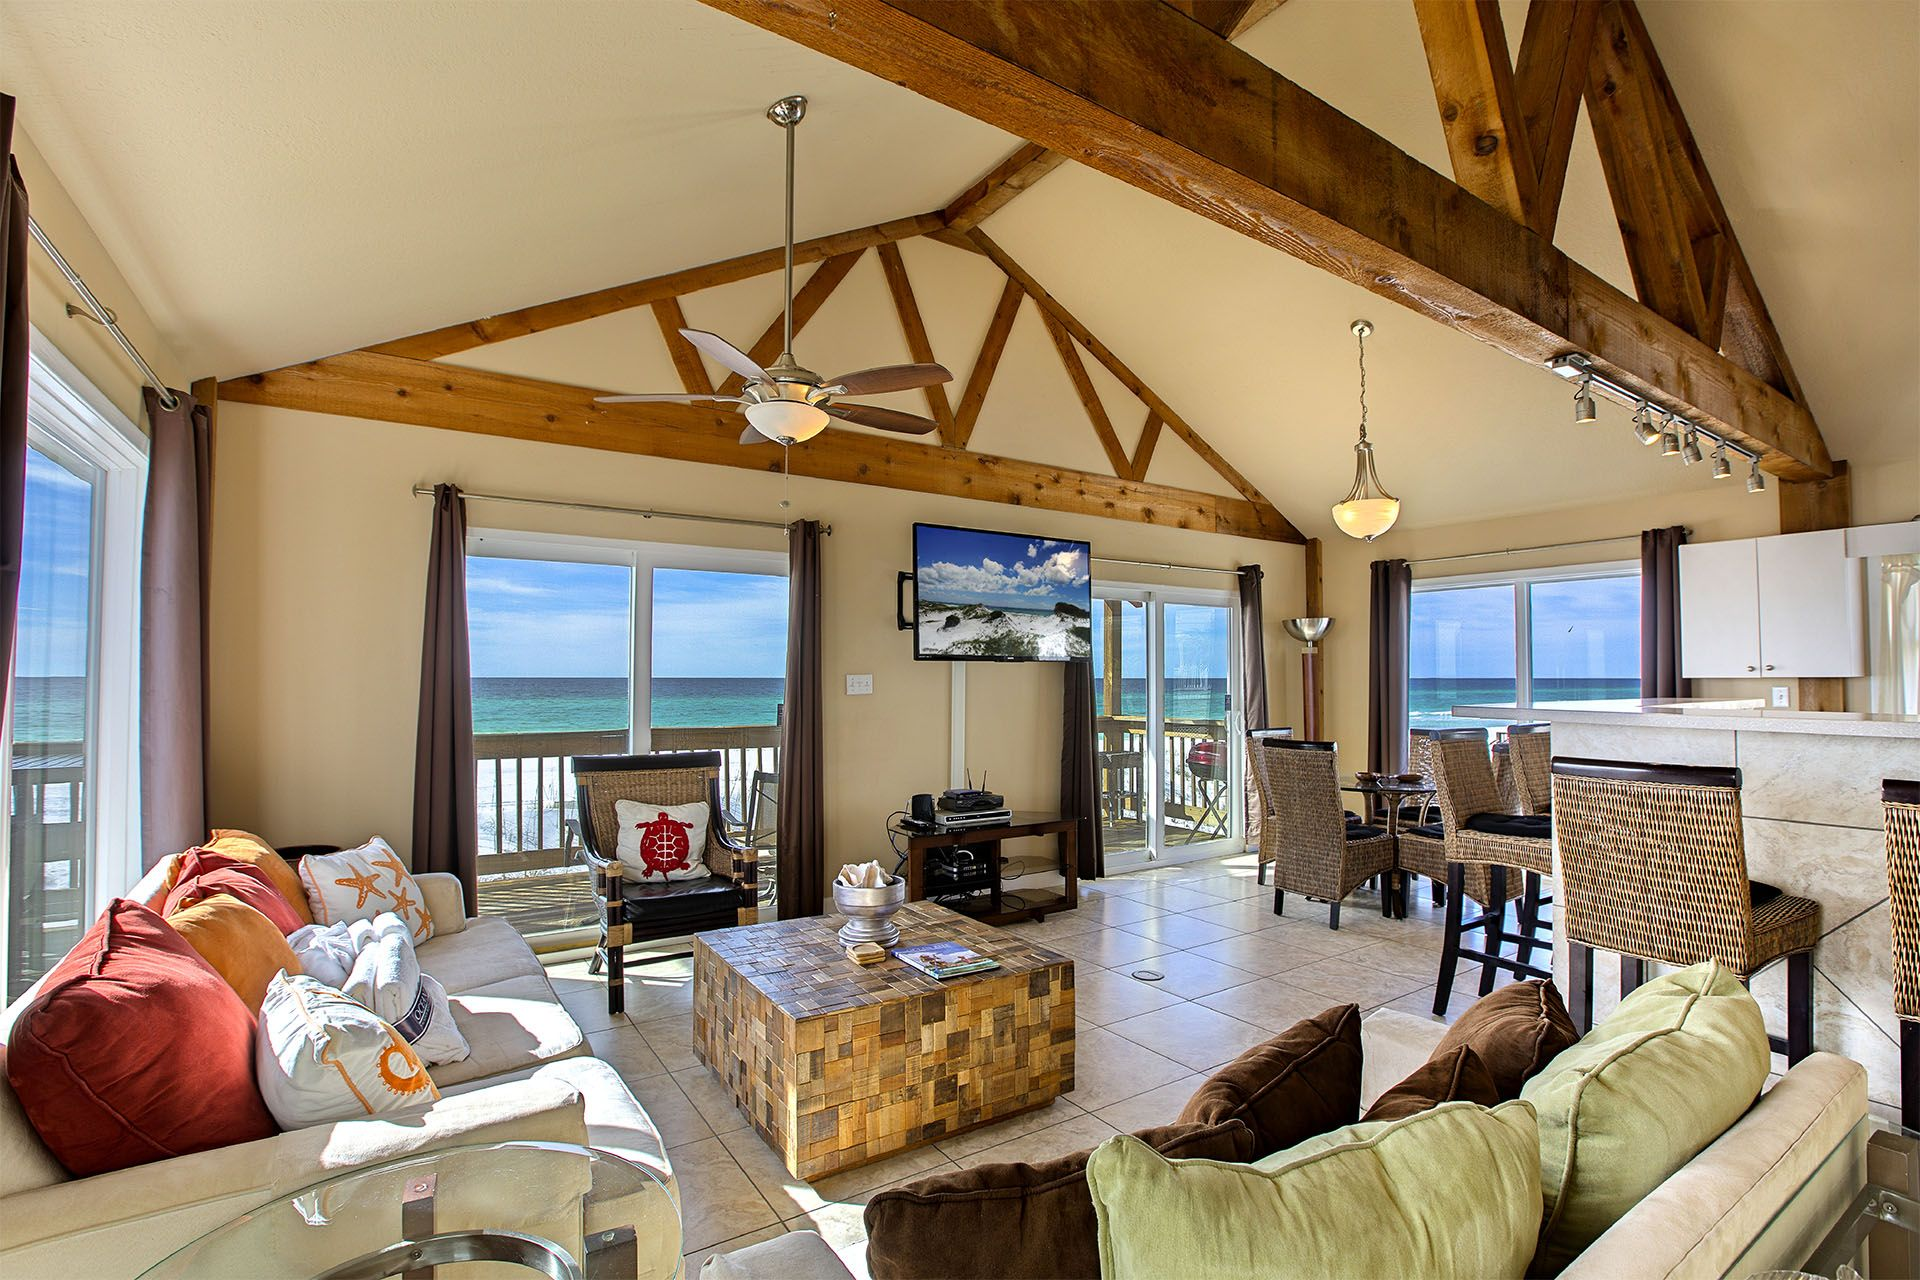 This is incredibly rare. A 2 bedroom beachfront home in